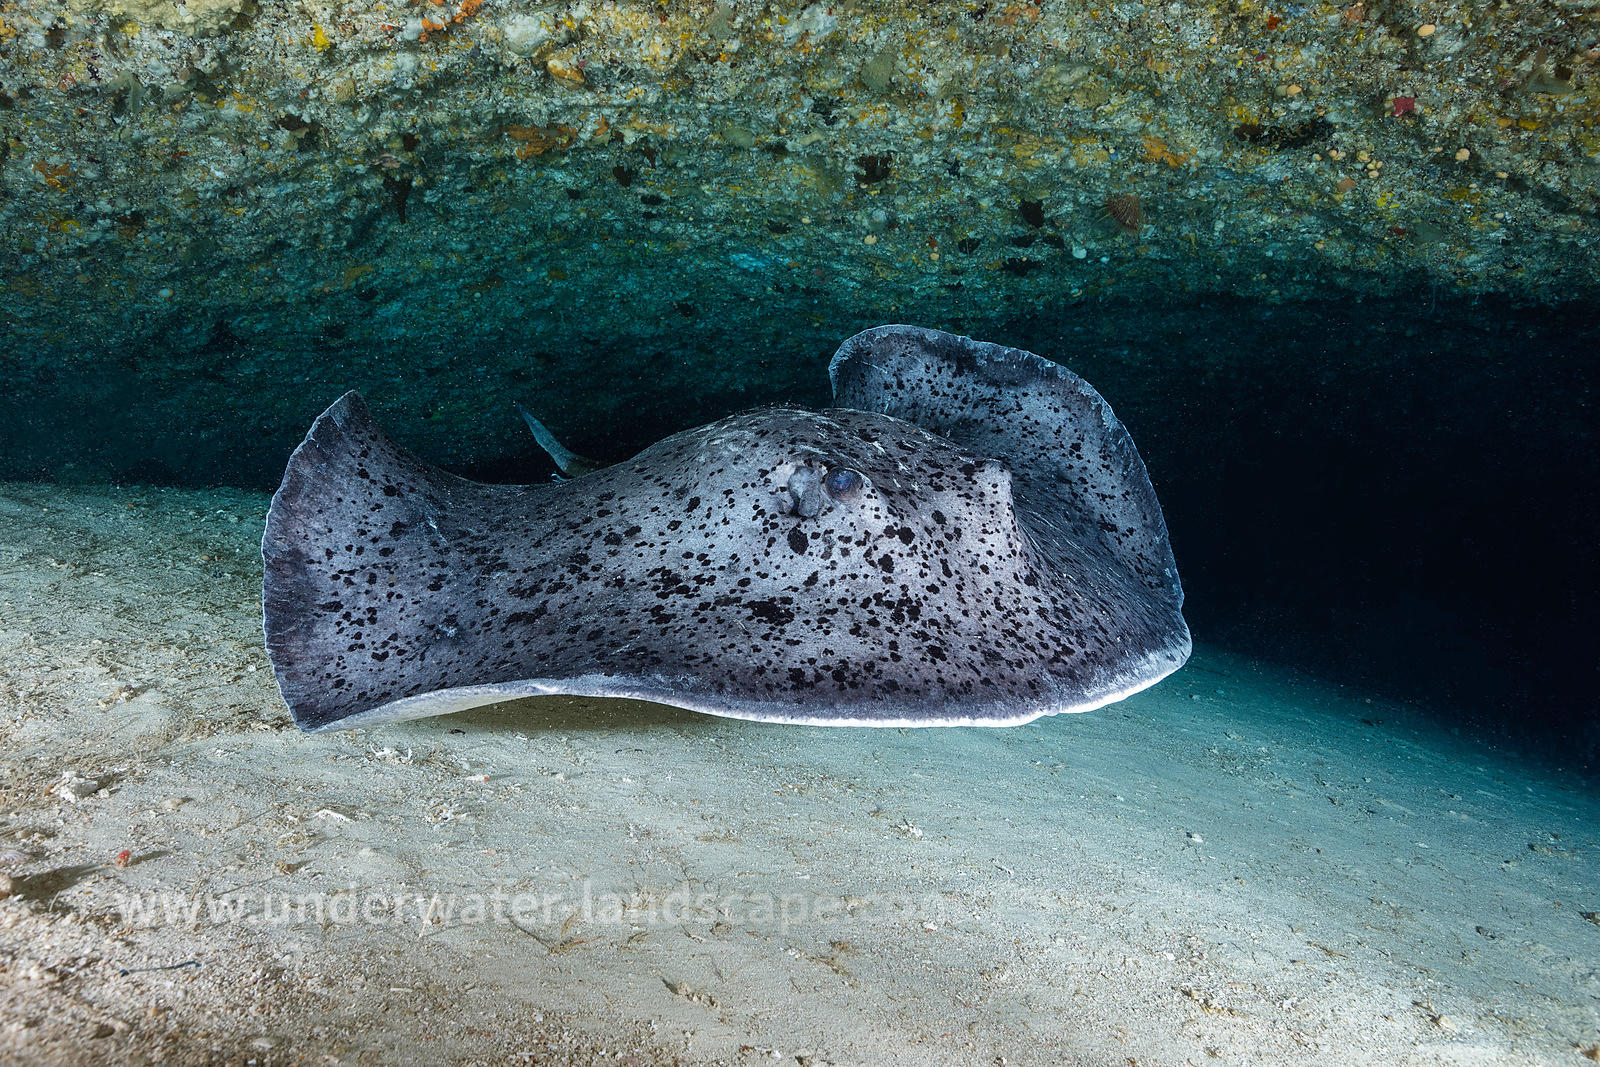 Face to face with a Blotched fantail ray